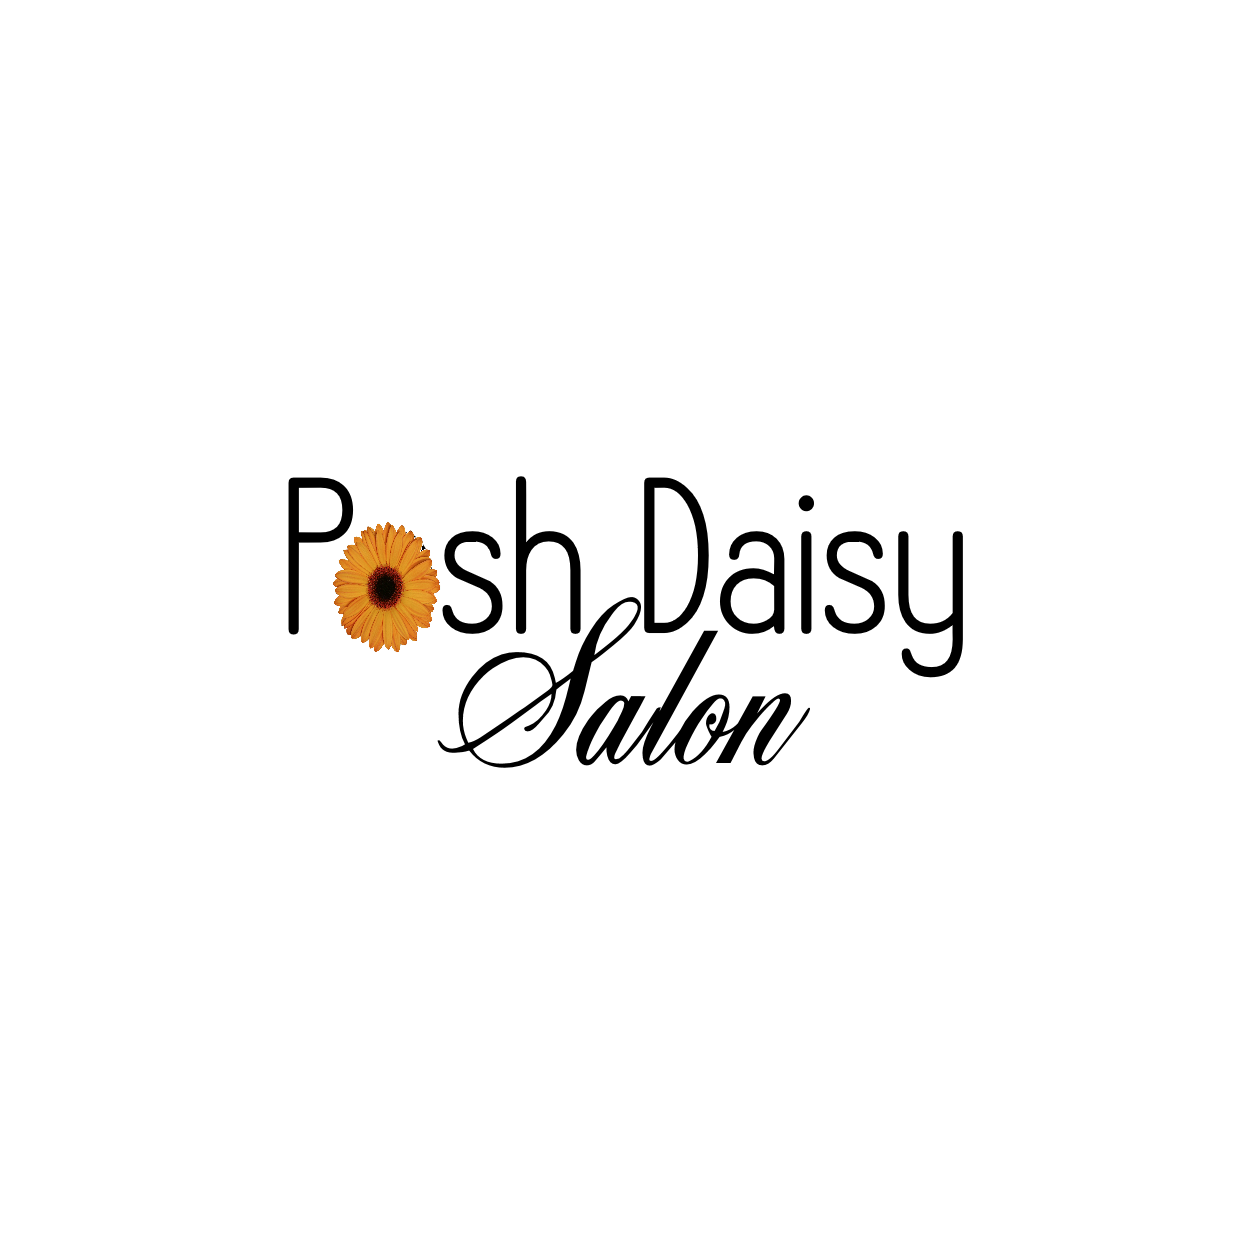 The Posh Daisy Salon Spa LLC primary image